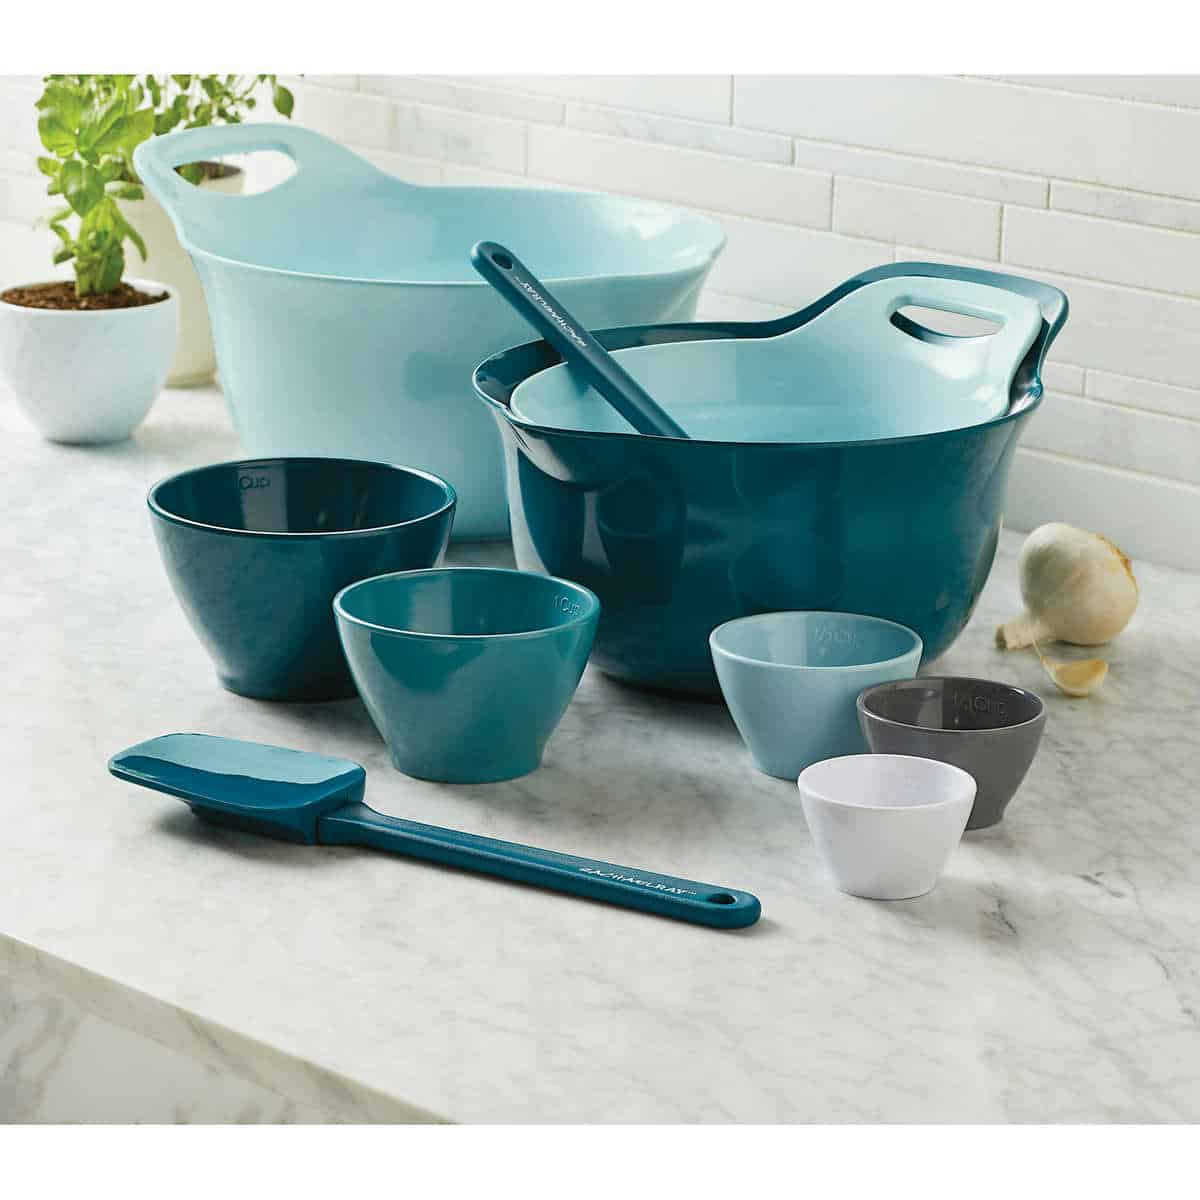 Rachael Ray 10-piece Mixing Bowl Set $47.99